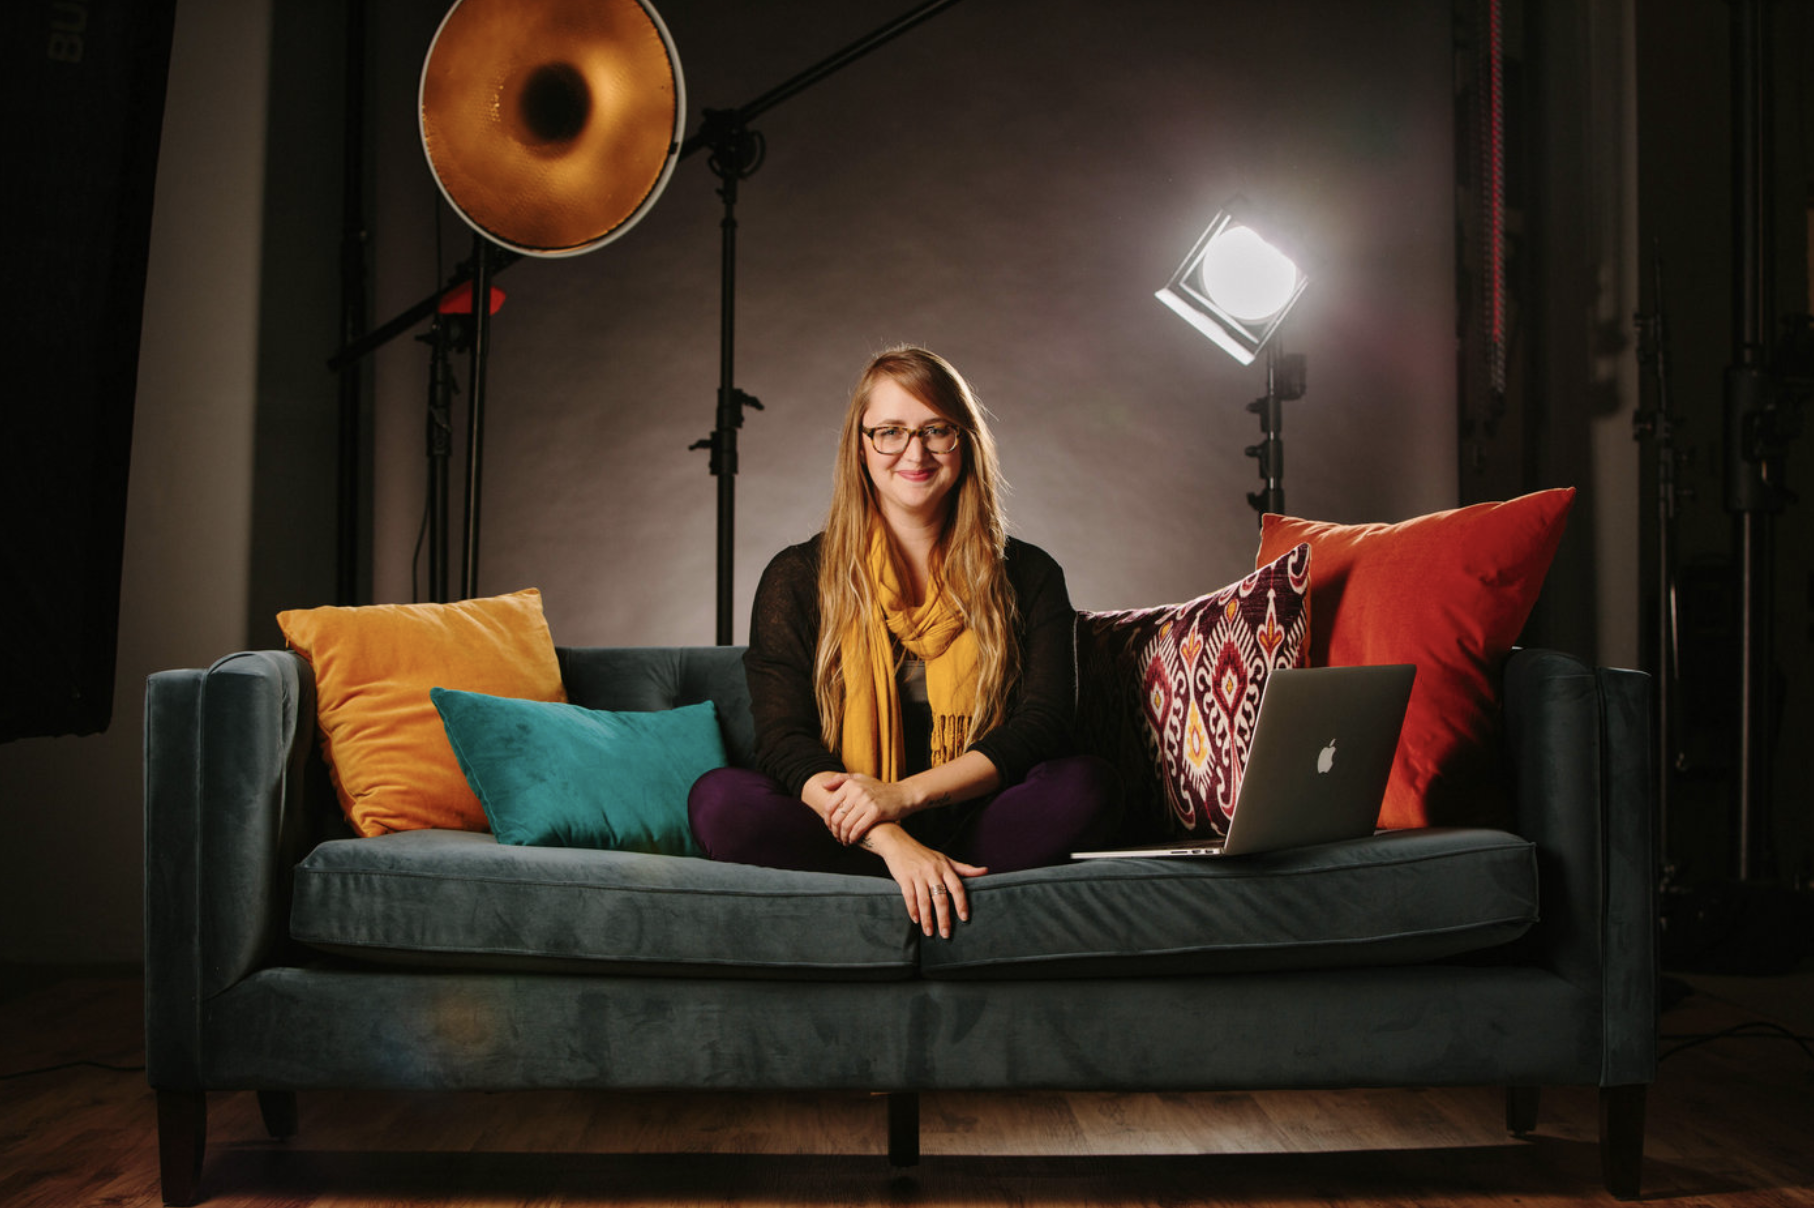 a blonde woman sits on a blue couch in a photo studio surrounded by colorful pillows to demonstrate one of the tips for great branding photos